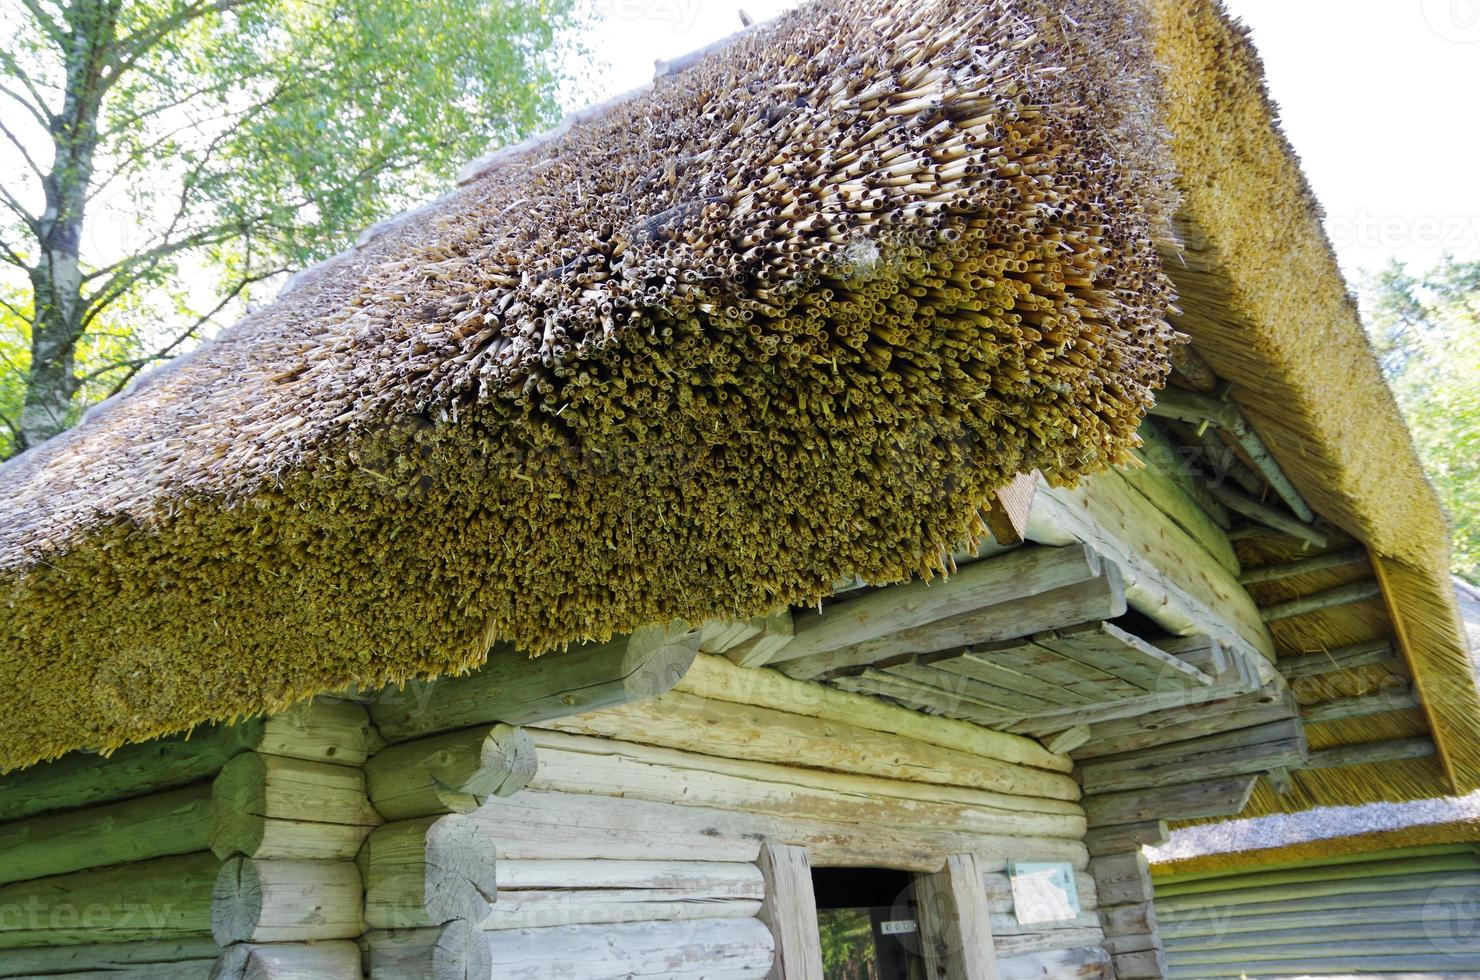 House with thatched roof in Estonia photo